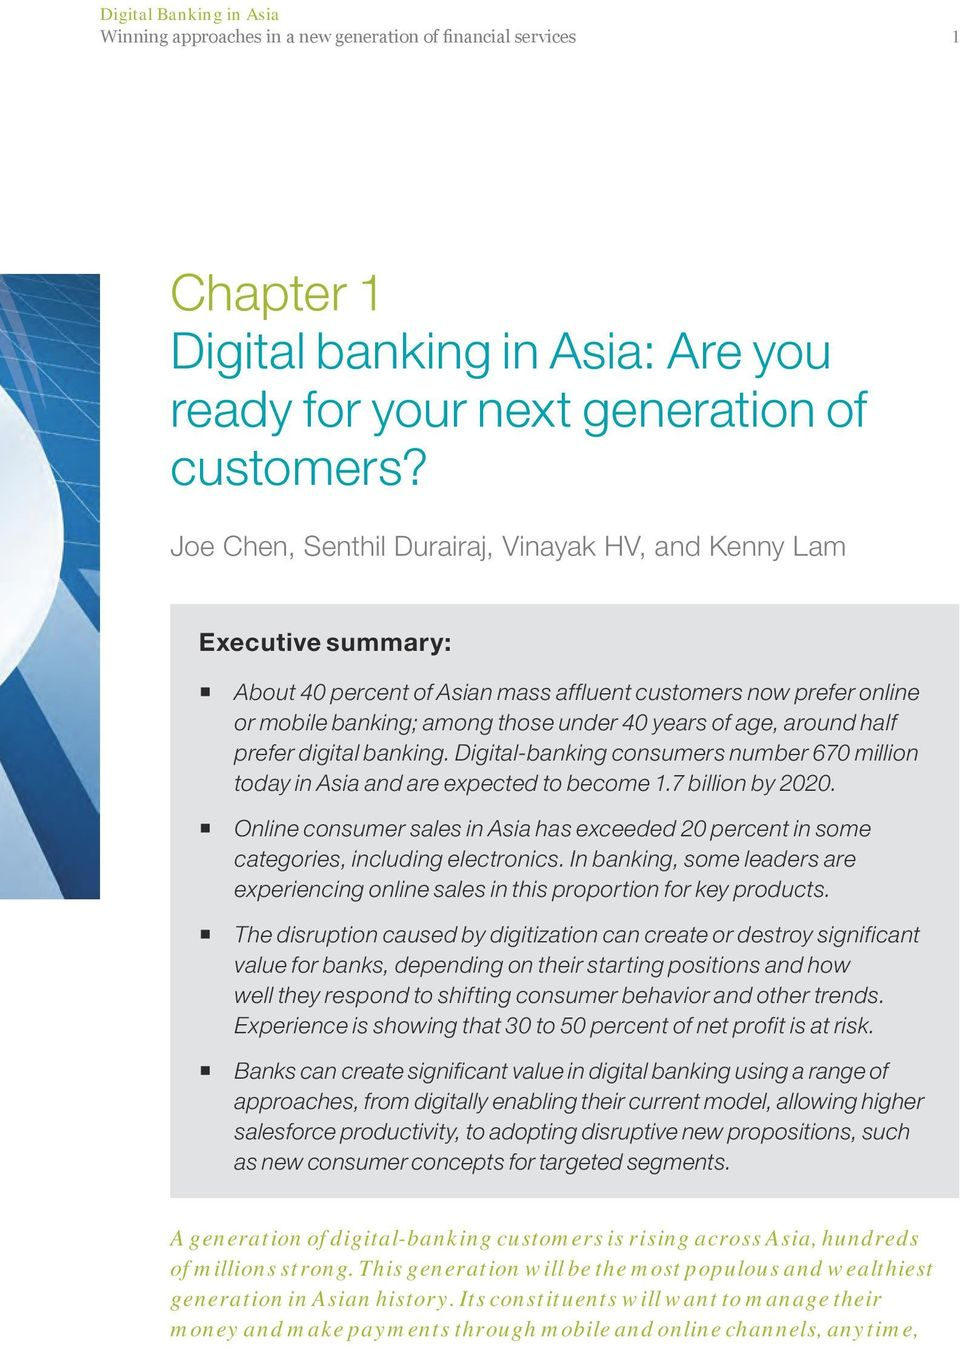 around half prefer digital banking. Digital-banking consumers number 670 million today in Asia and are expected to become 1.7 billion by 2020.